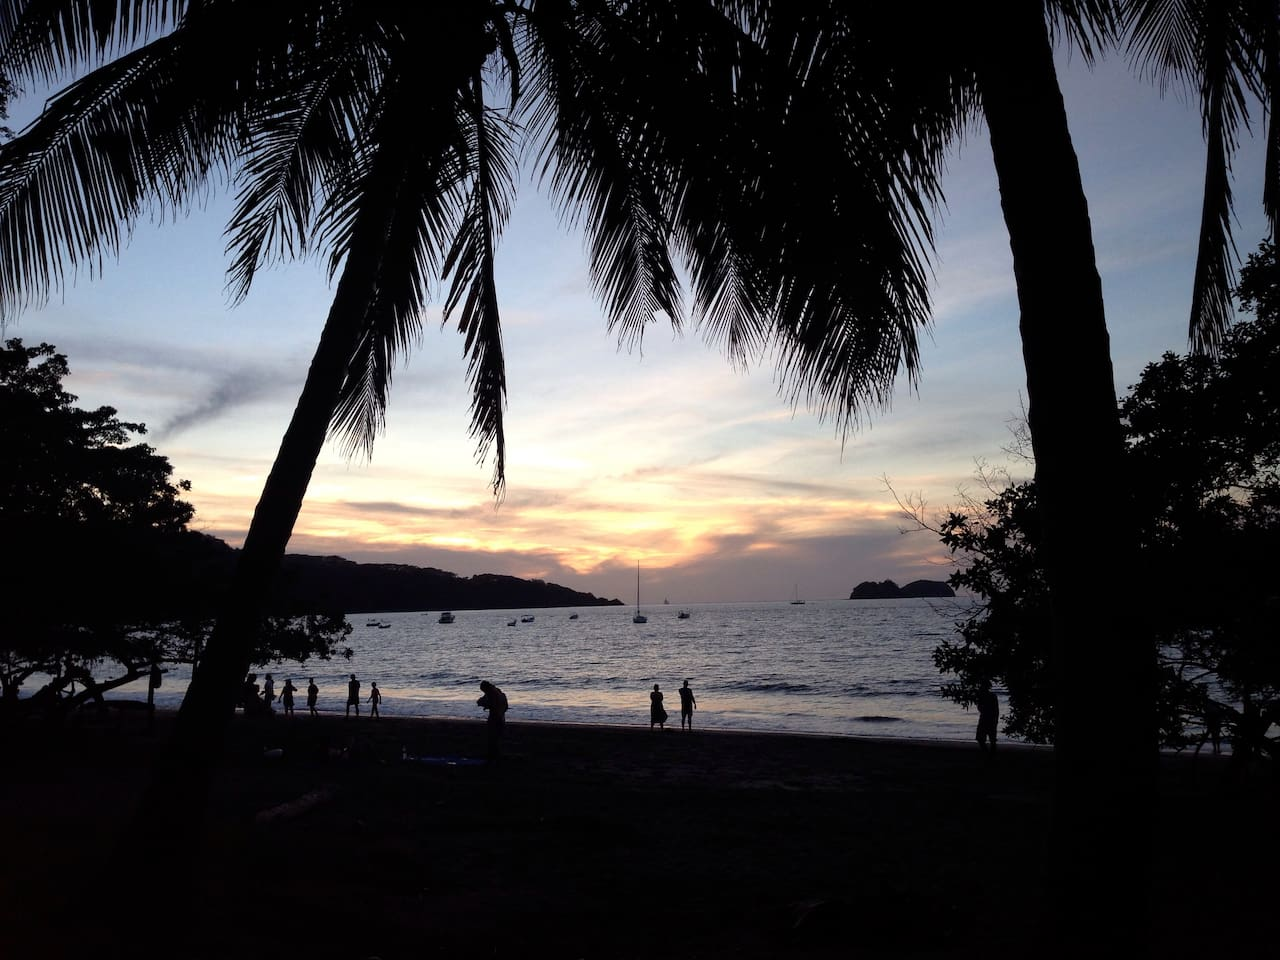 PLAYA HERMOSA'S SUNSET